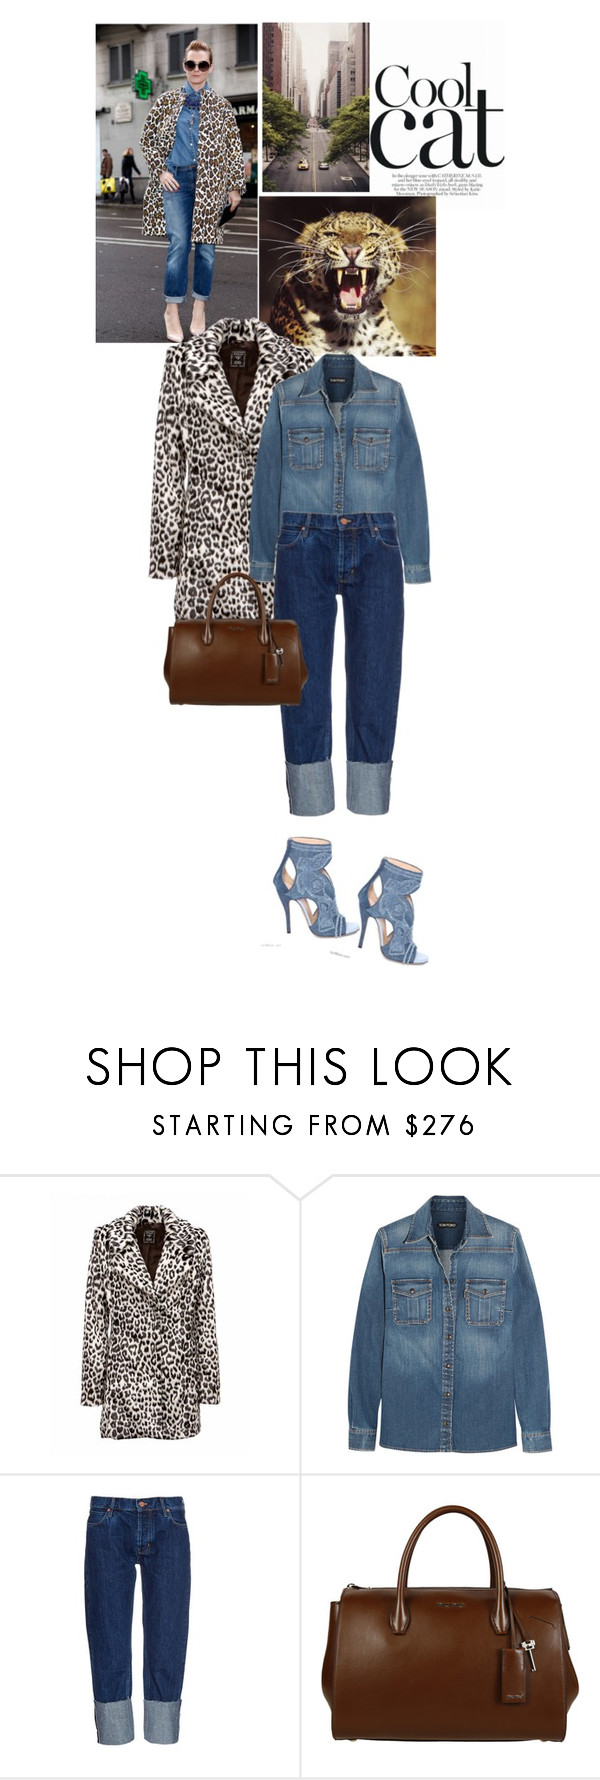 """""""Título 251"""" by drigomes ❤ liked on Polyvore featuring moda, Tom Ford, MiH Jeans i Miu Miu"""